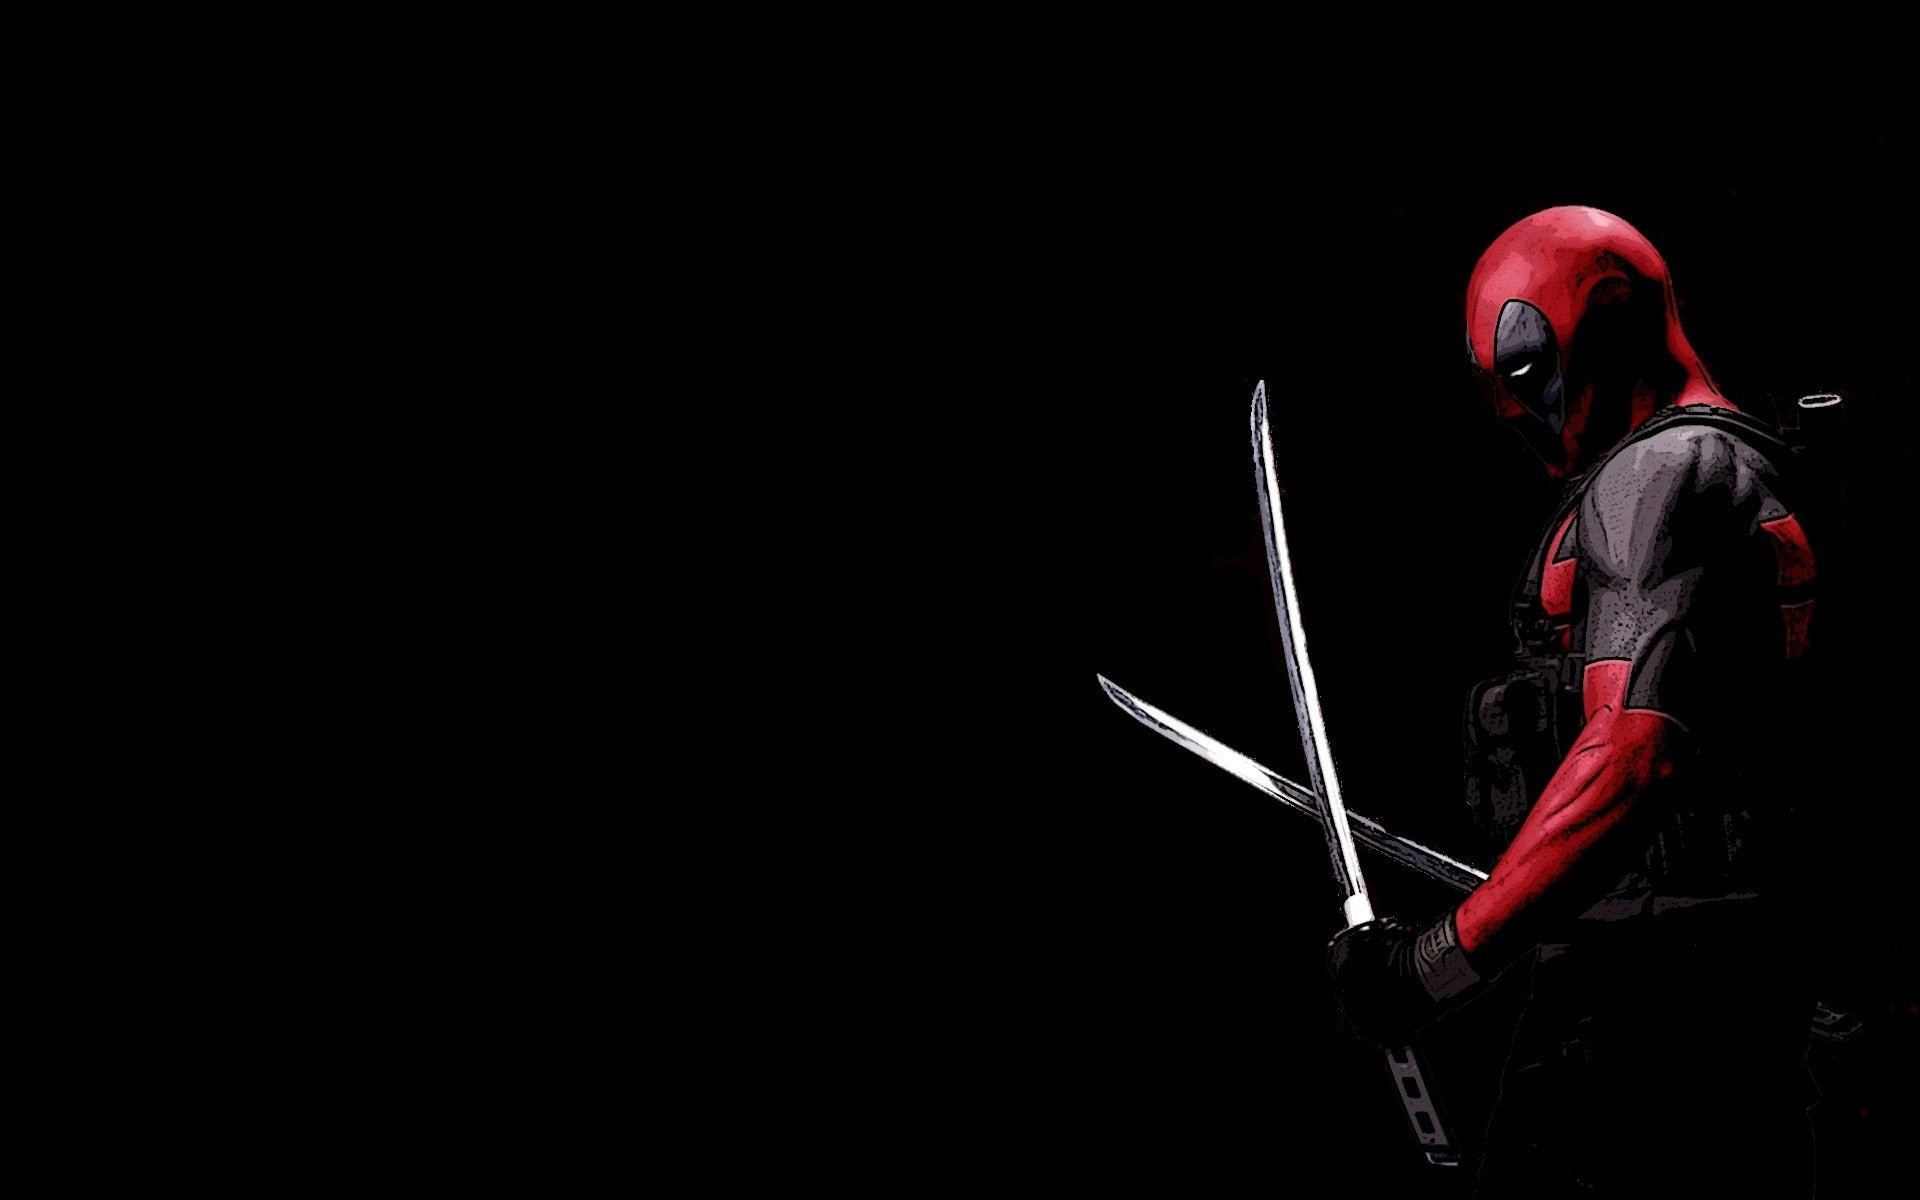 Funny Deadpool Wallpaper Iphone 68 Images